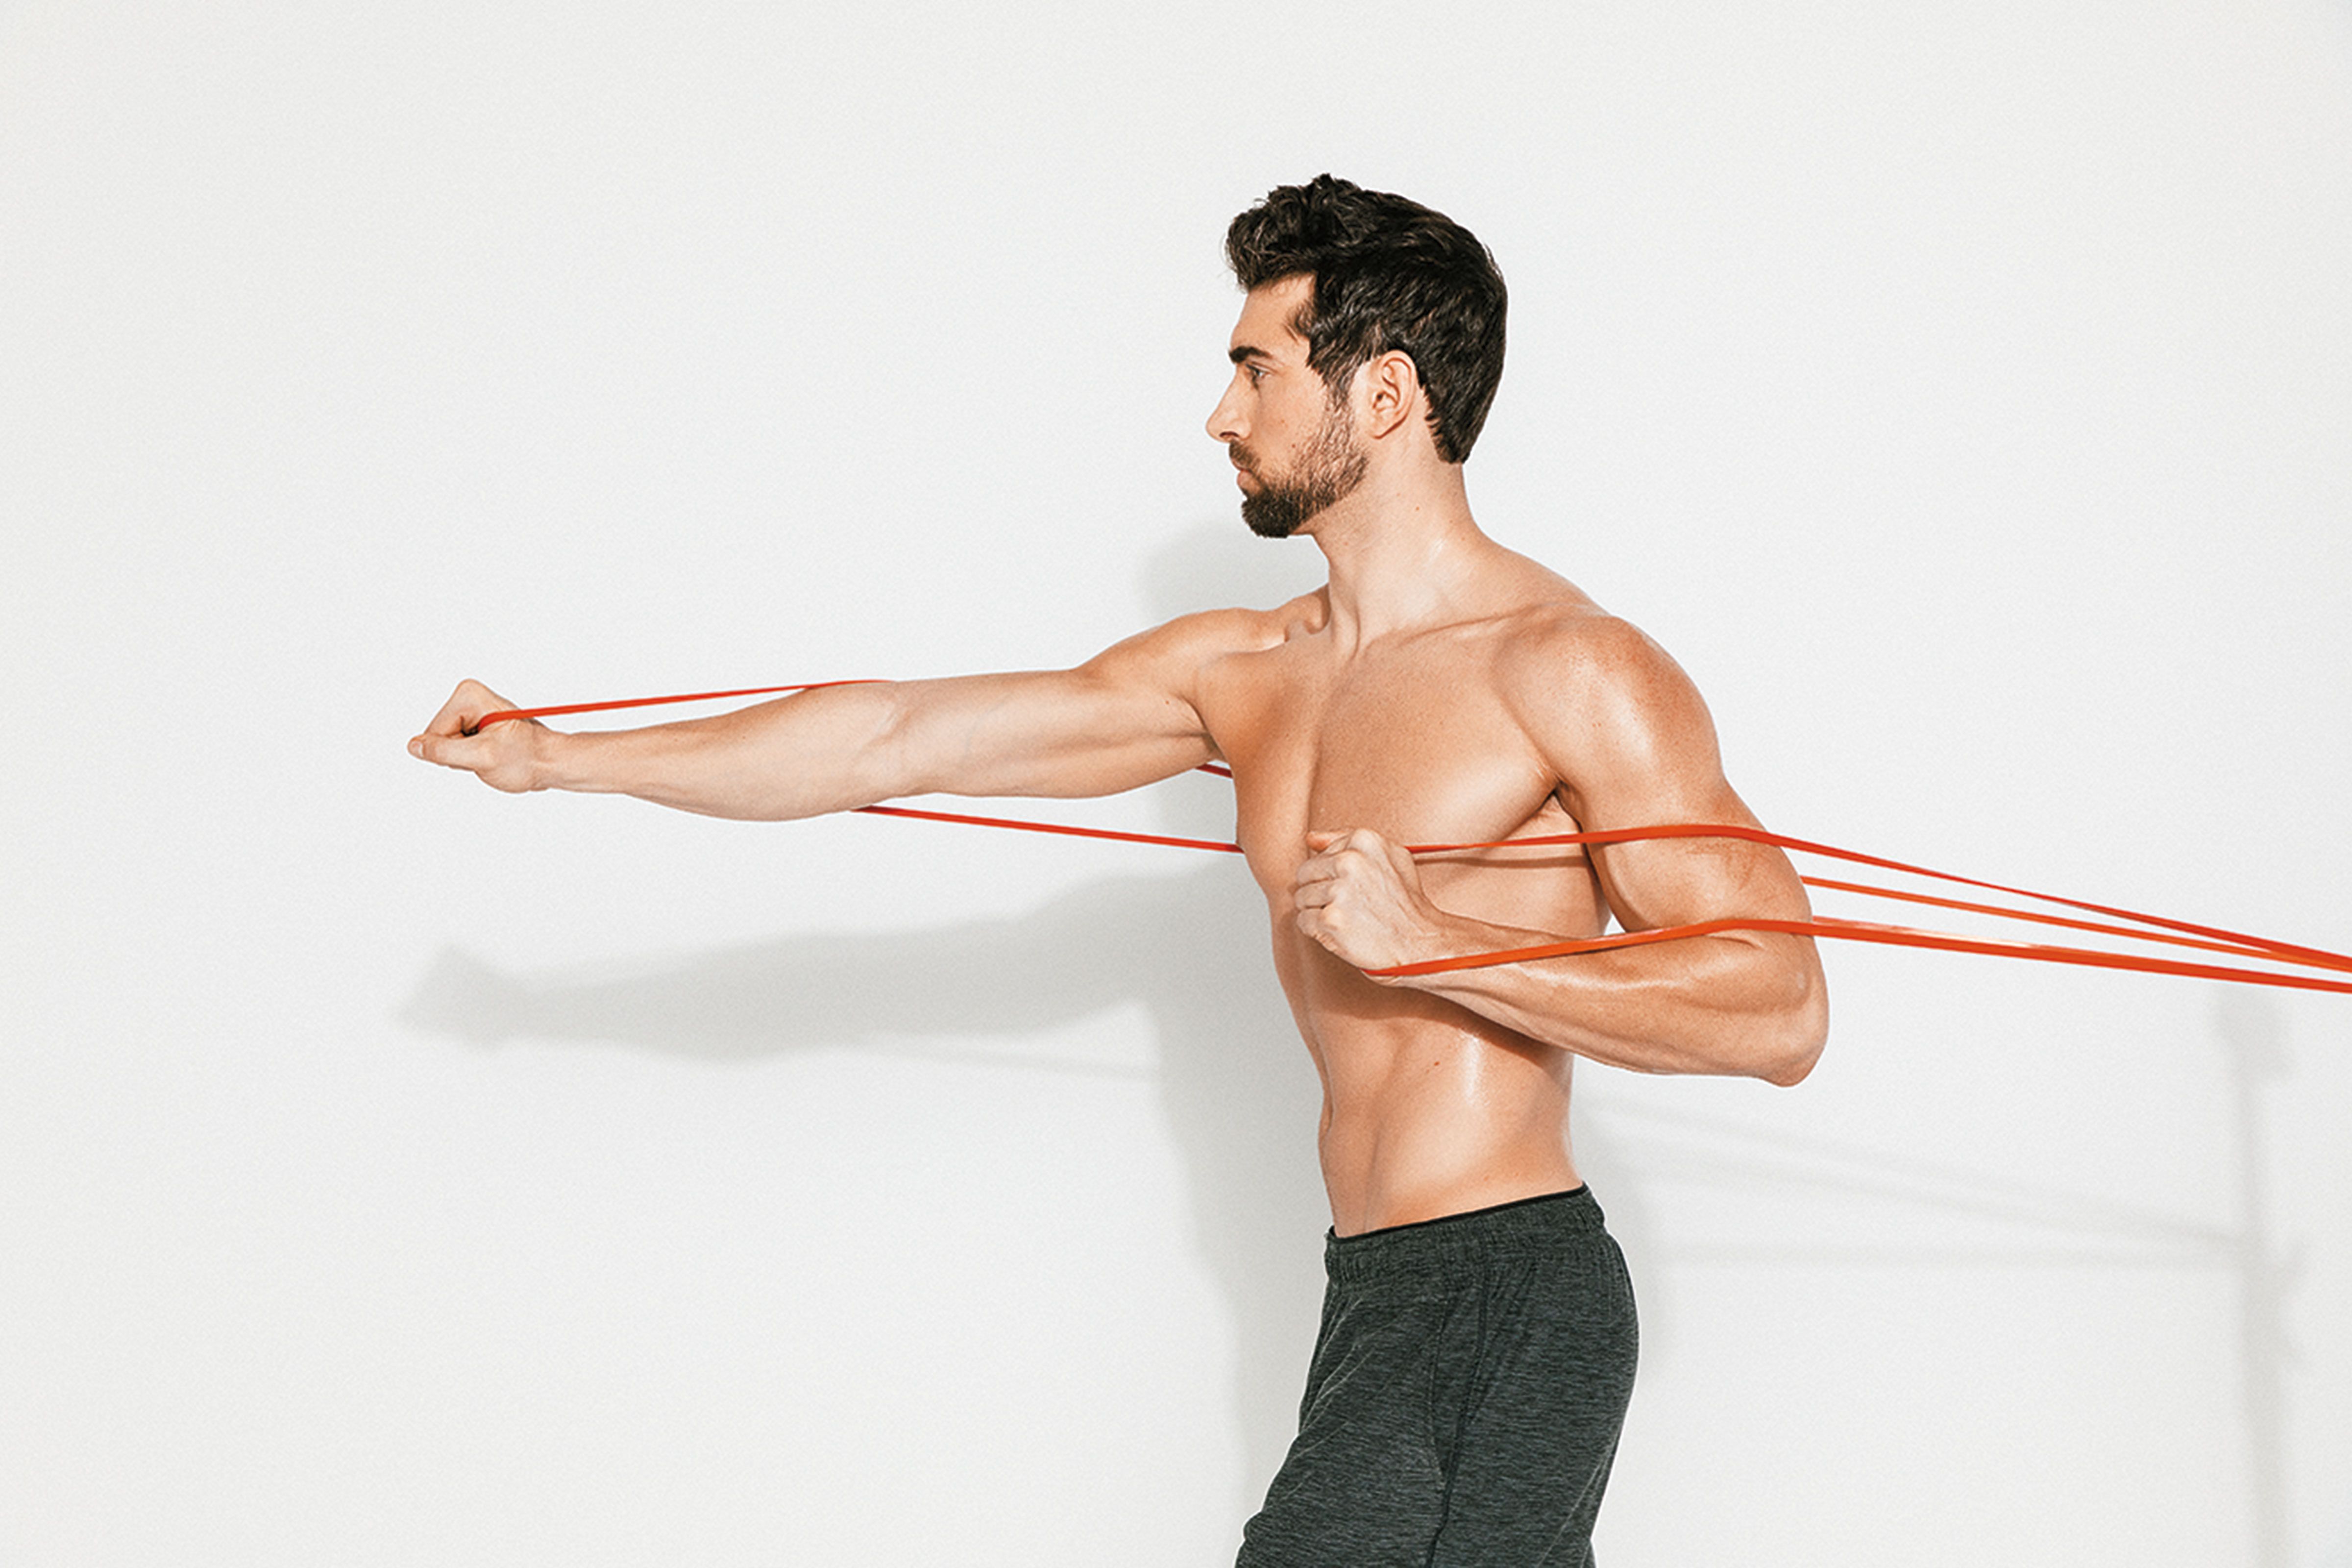 Workout of the Month: The Heavy Bands Circuit That Works Your Entire Body